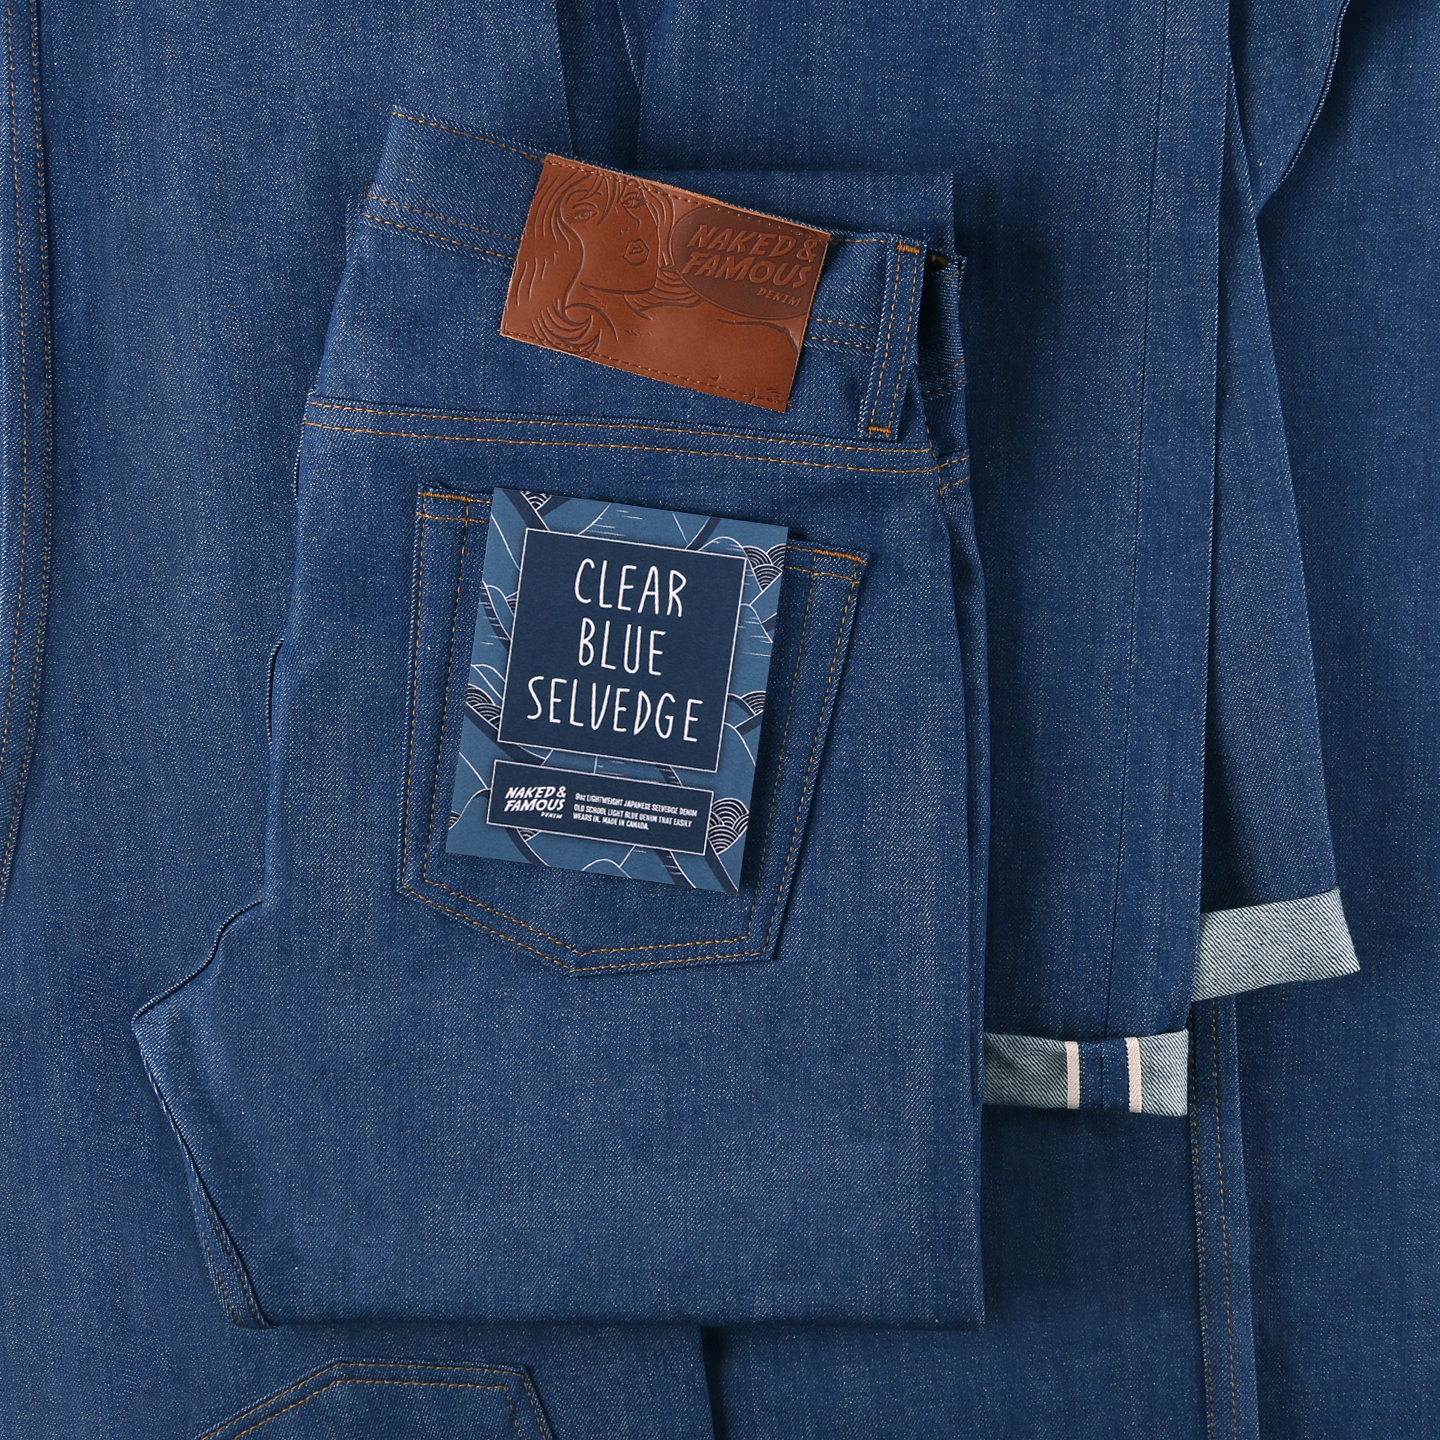 clear blue selvedge jeans folded